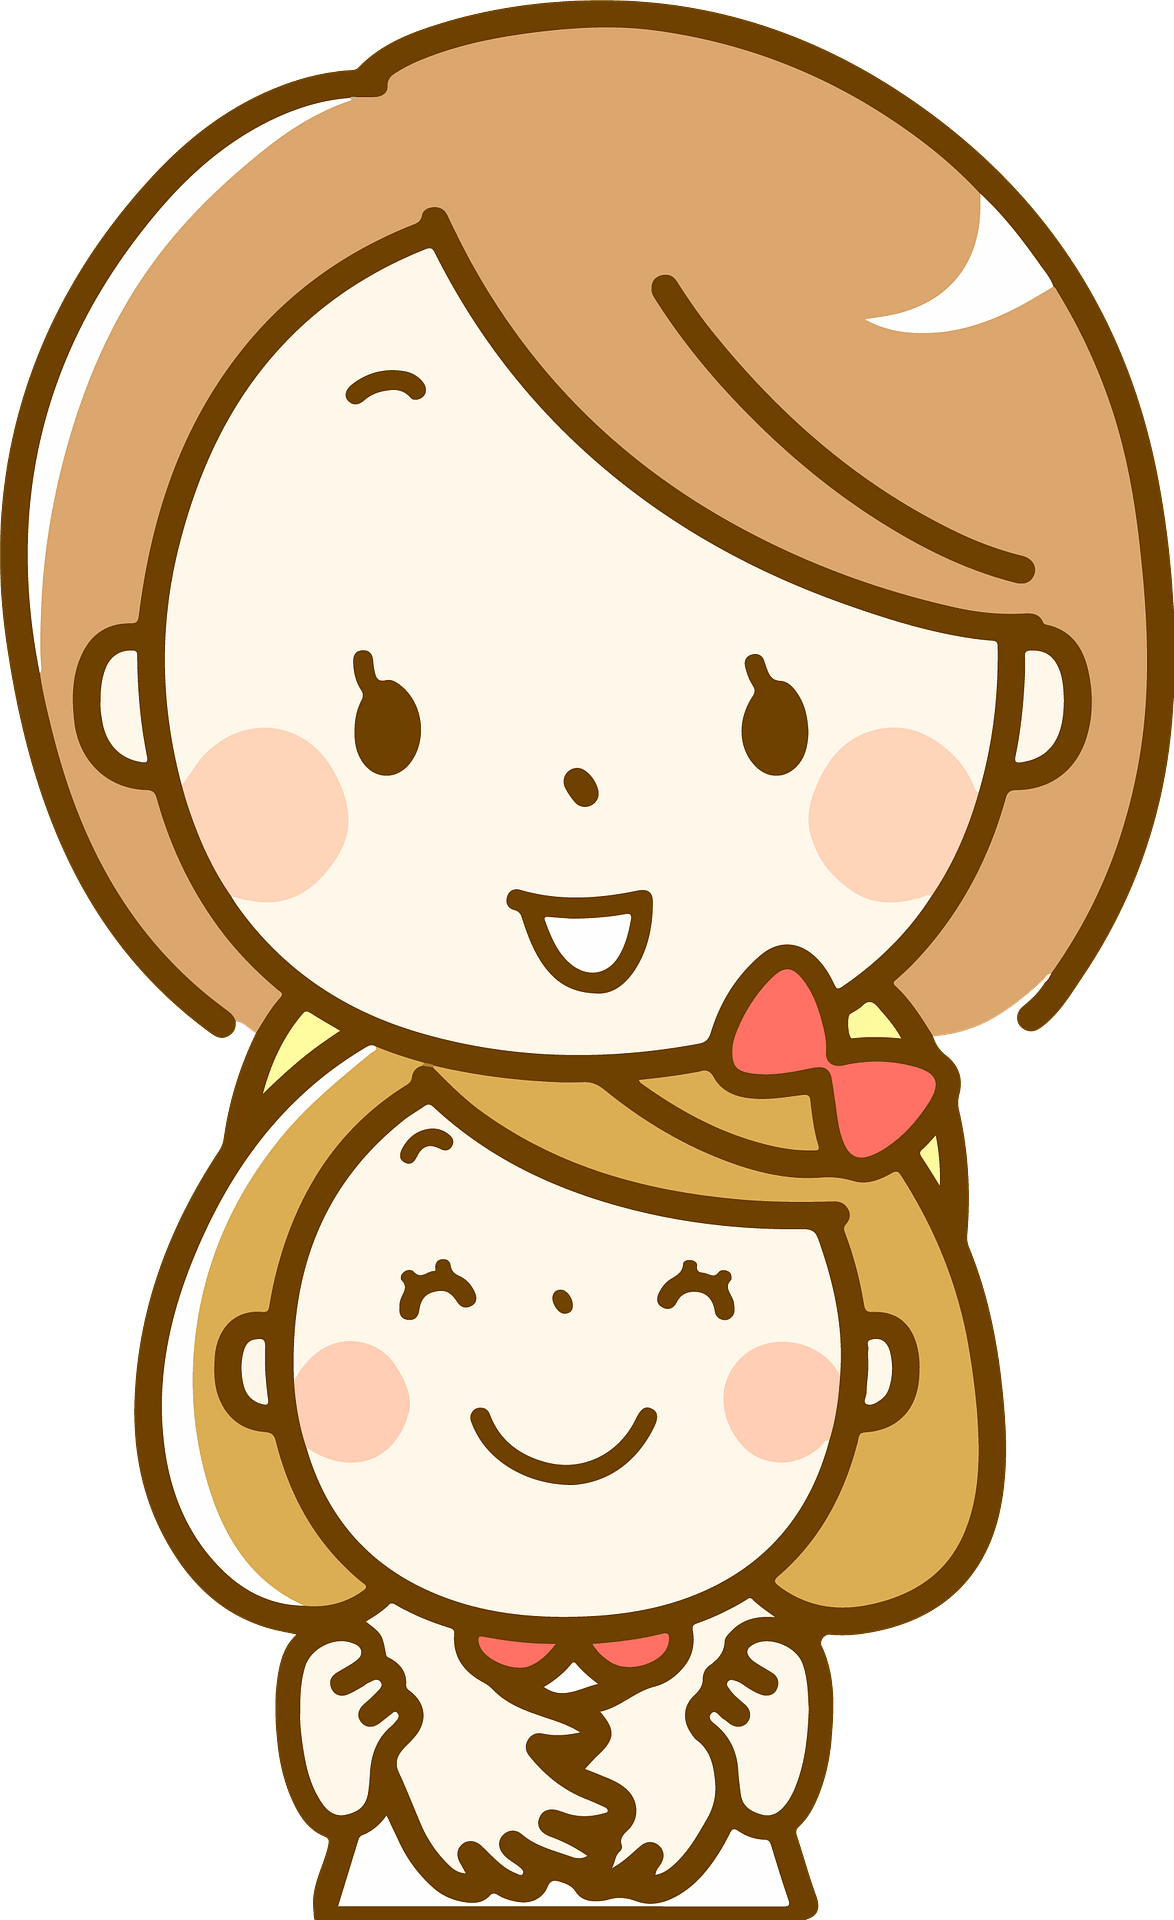 mother and daughter hugging clipart. free download transparent .png |  creazilla  creazilla